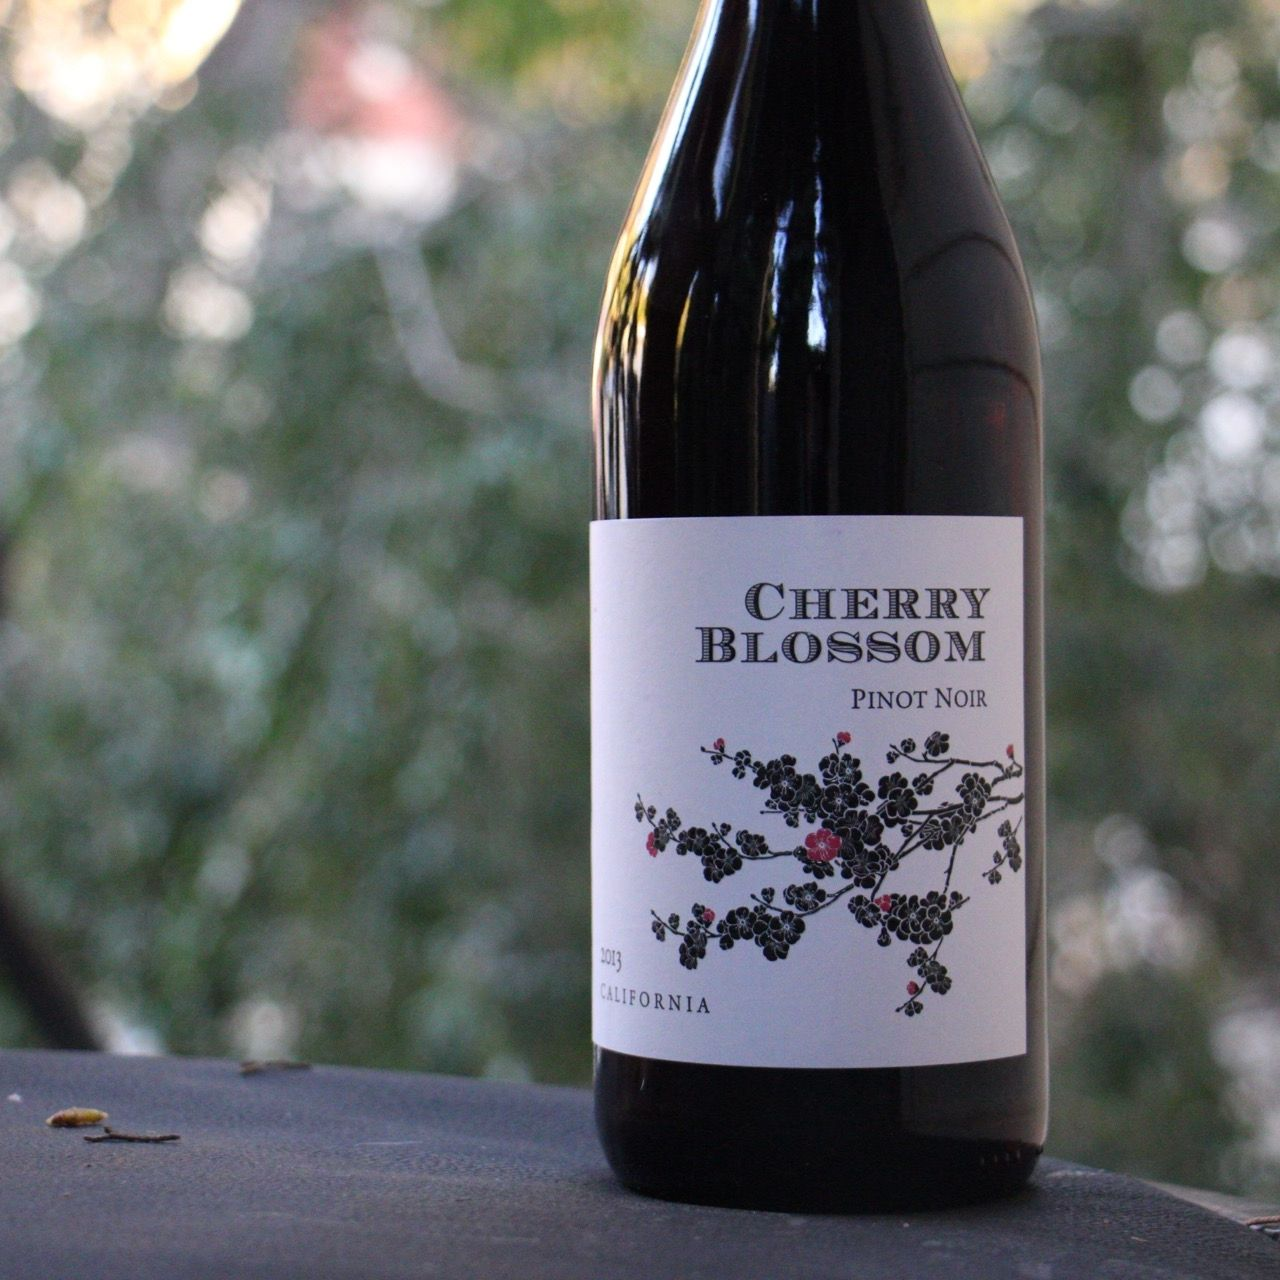 The Wine Idiot Reviews: Cherry Blossom Pinot Noir, 2013 ($3.99)